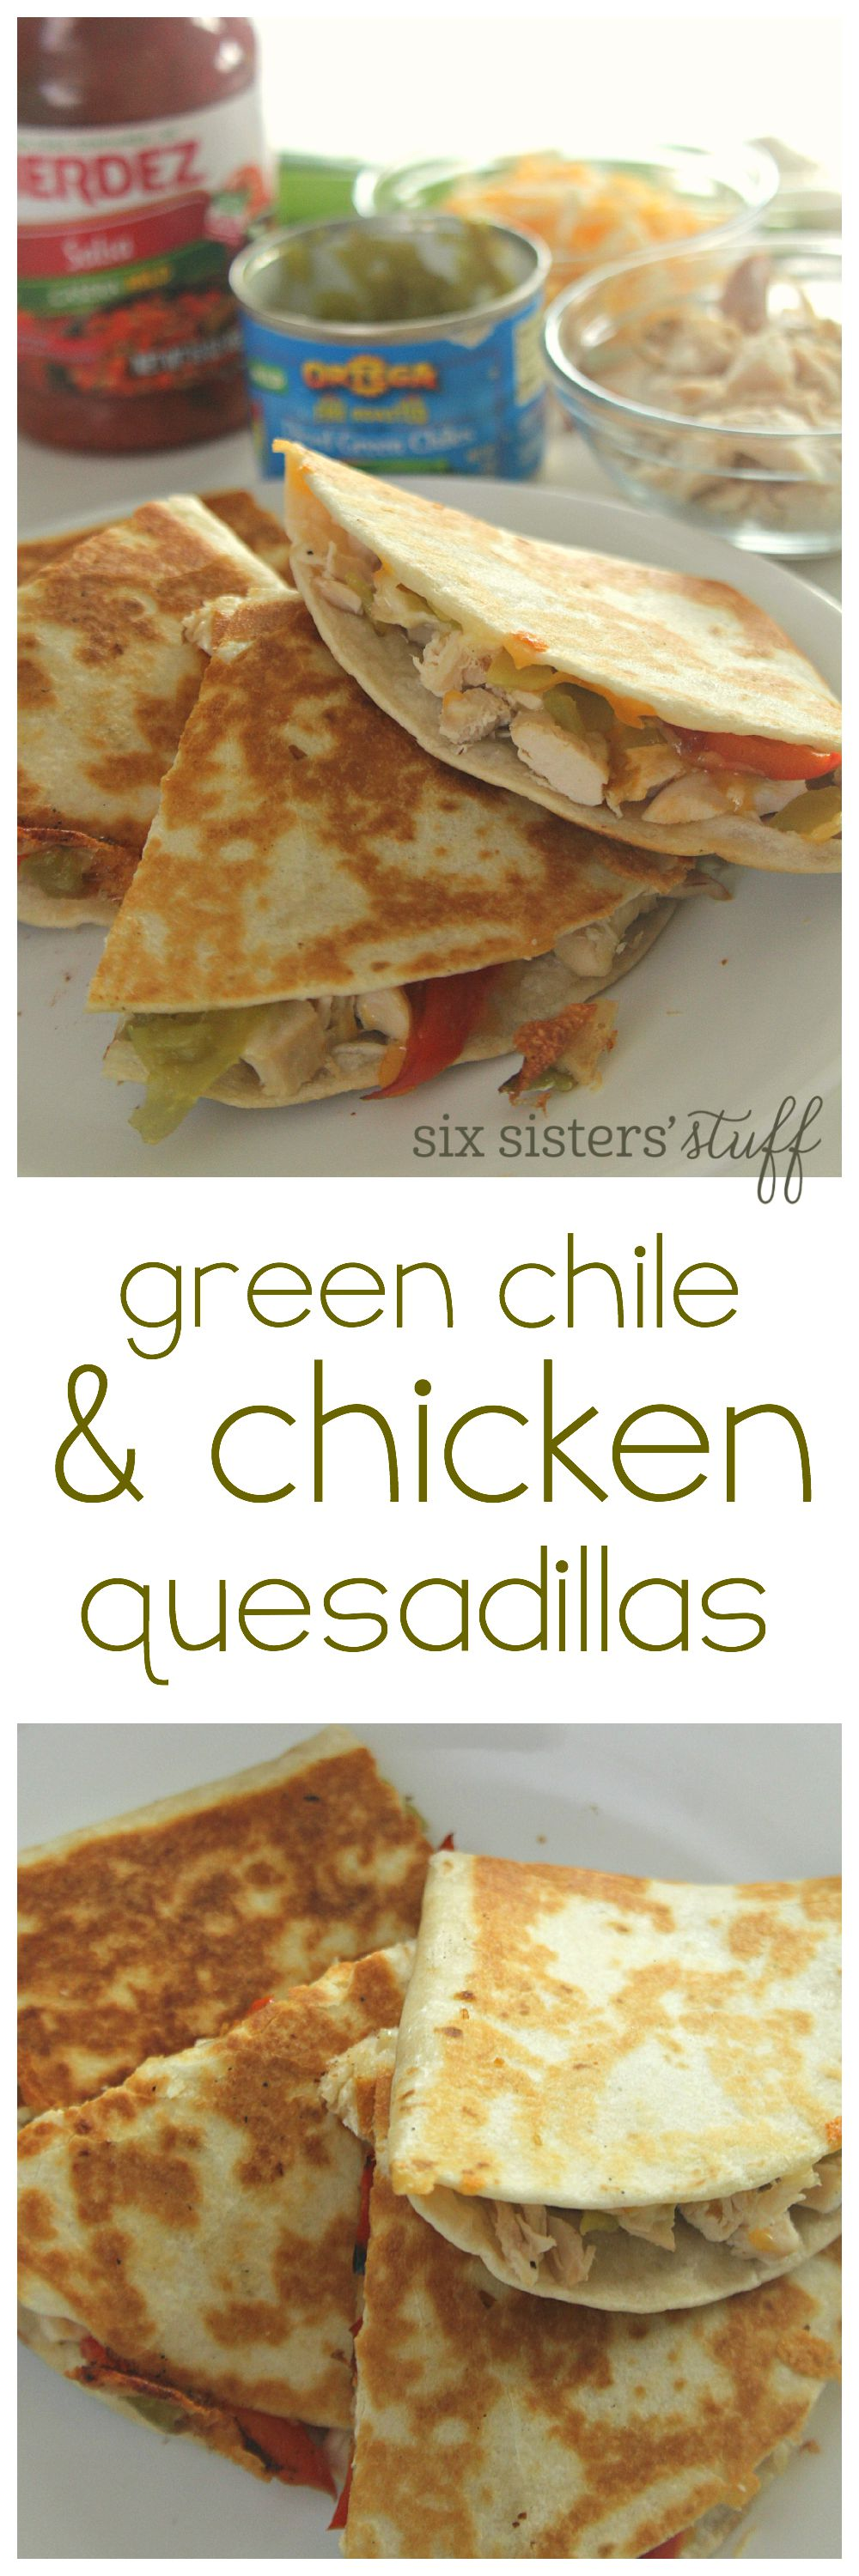 Green Chile And Chicken Quesadillas Recipe Mexican Food Recipes Recipes Food